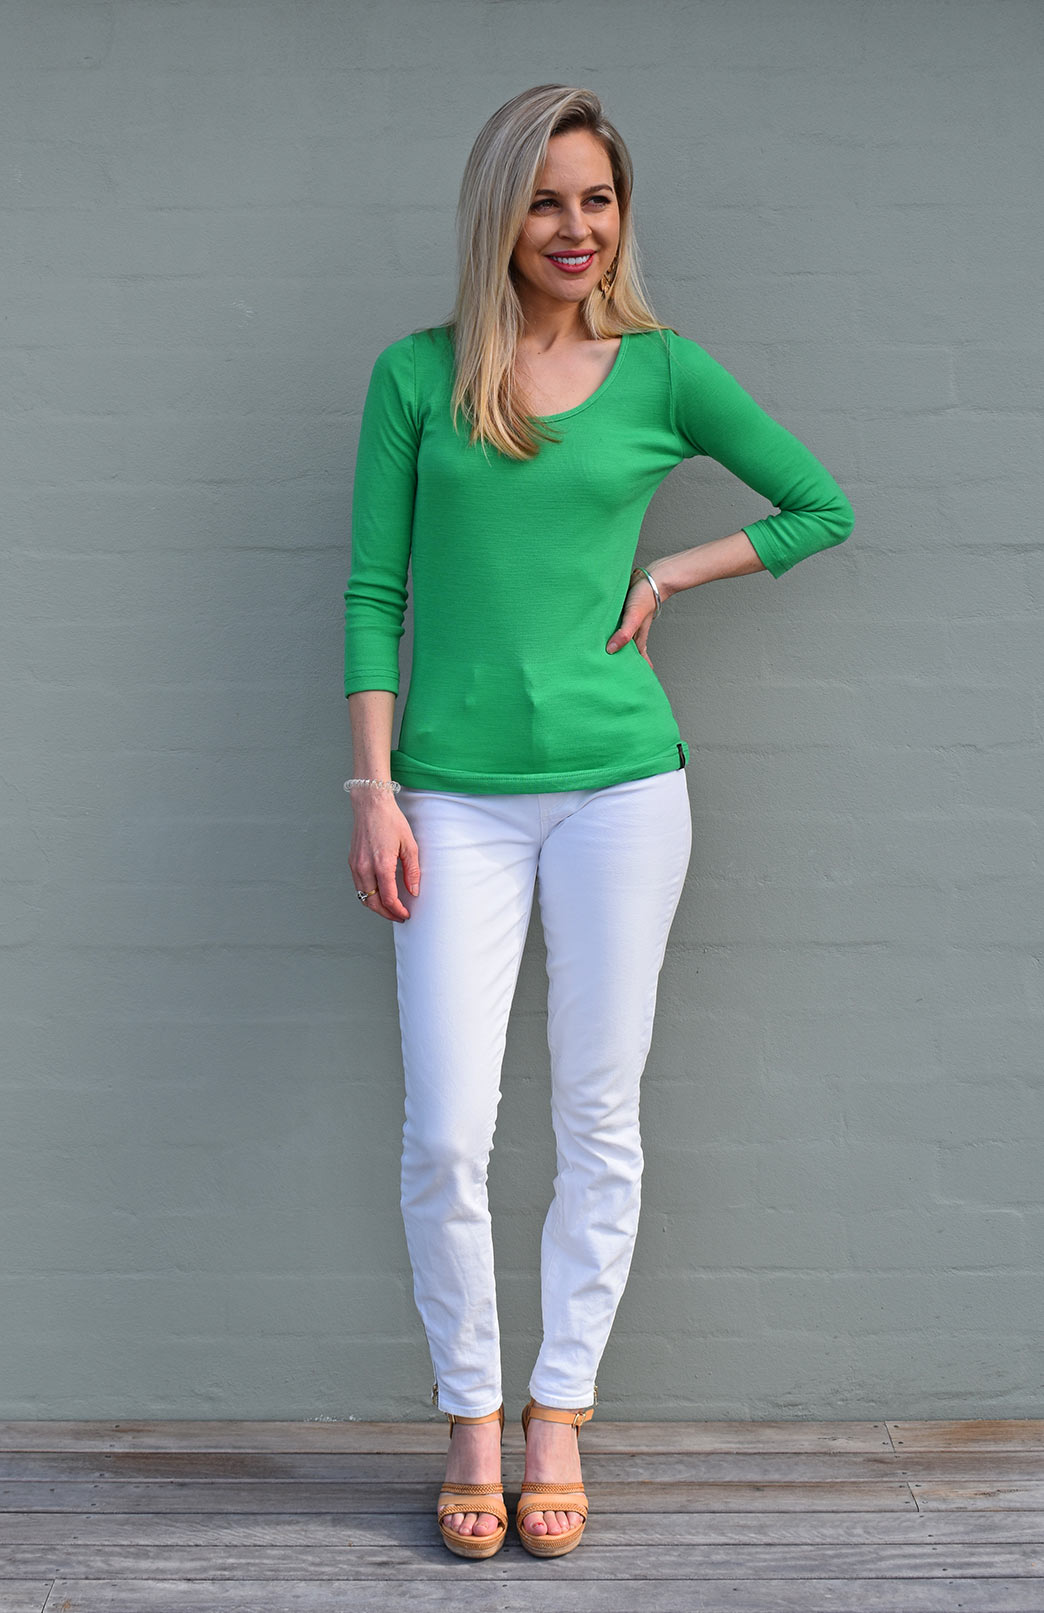 Sienna Top - Merino Wool - Women's Kelly Green Superfine Merino Wool Three Quarter Sleeve Scoop Neck Top - Smitten Merino Tasmania Australia